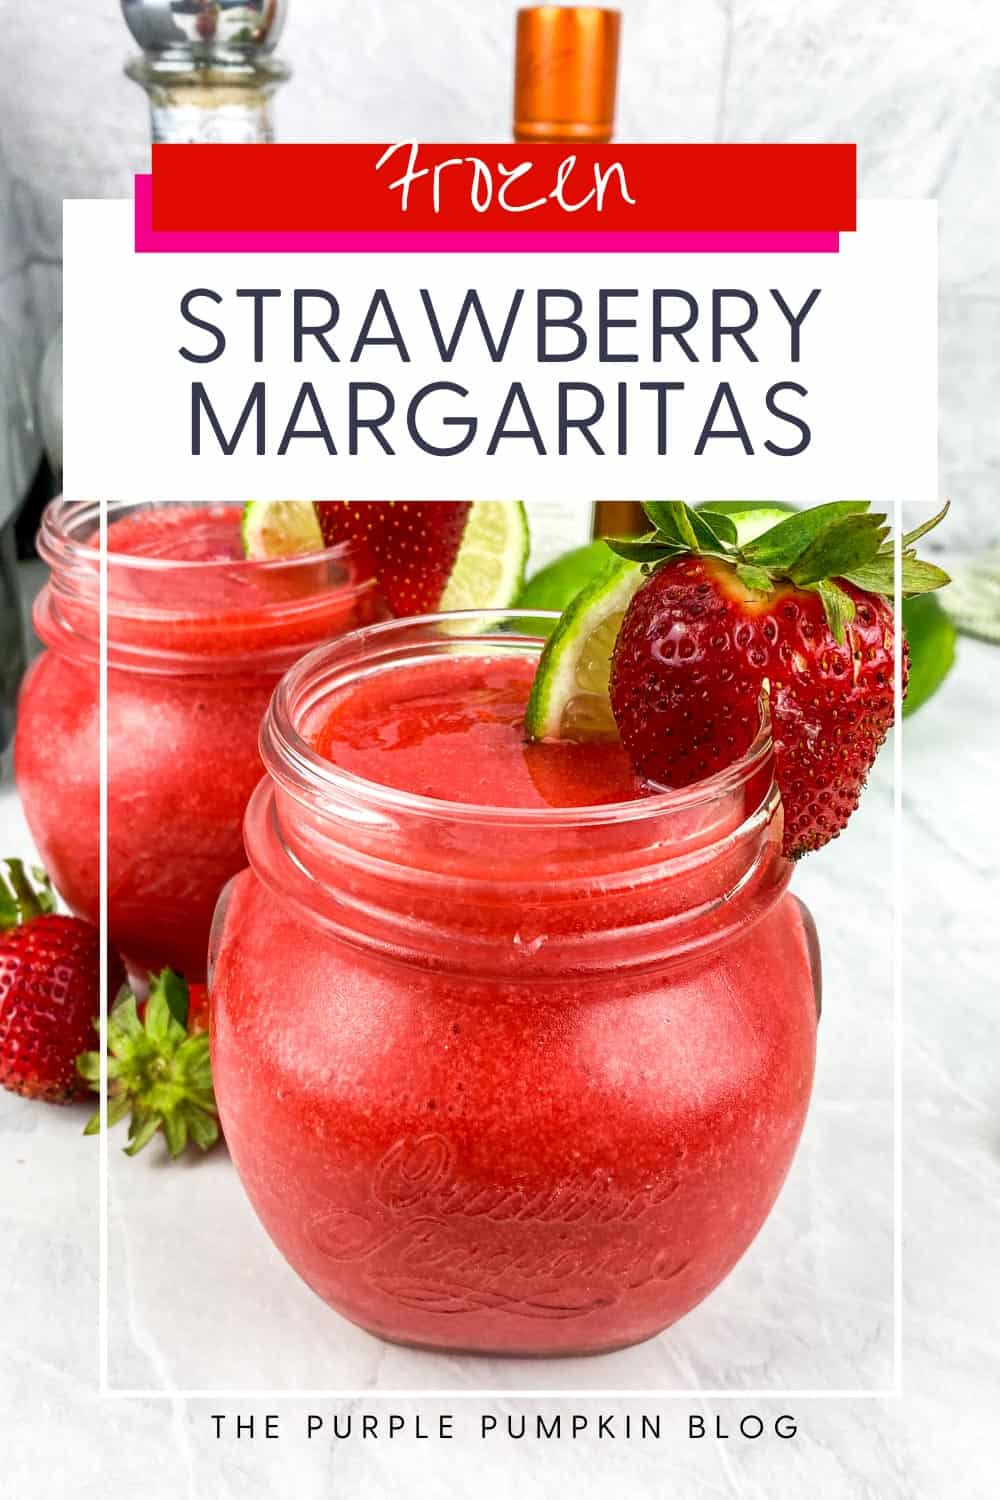 Frozen-Strawberry-Margaritas-Recipe